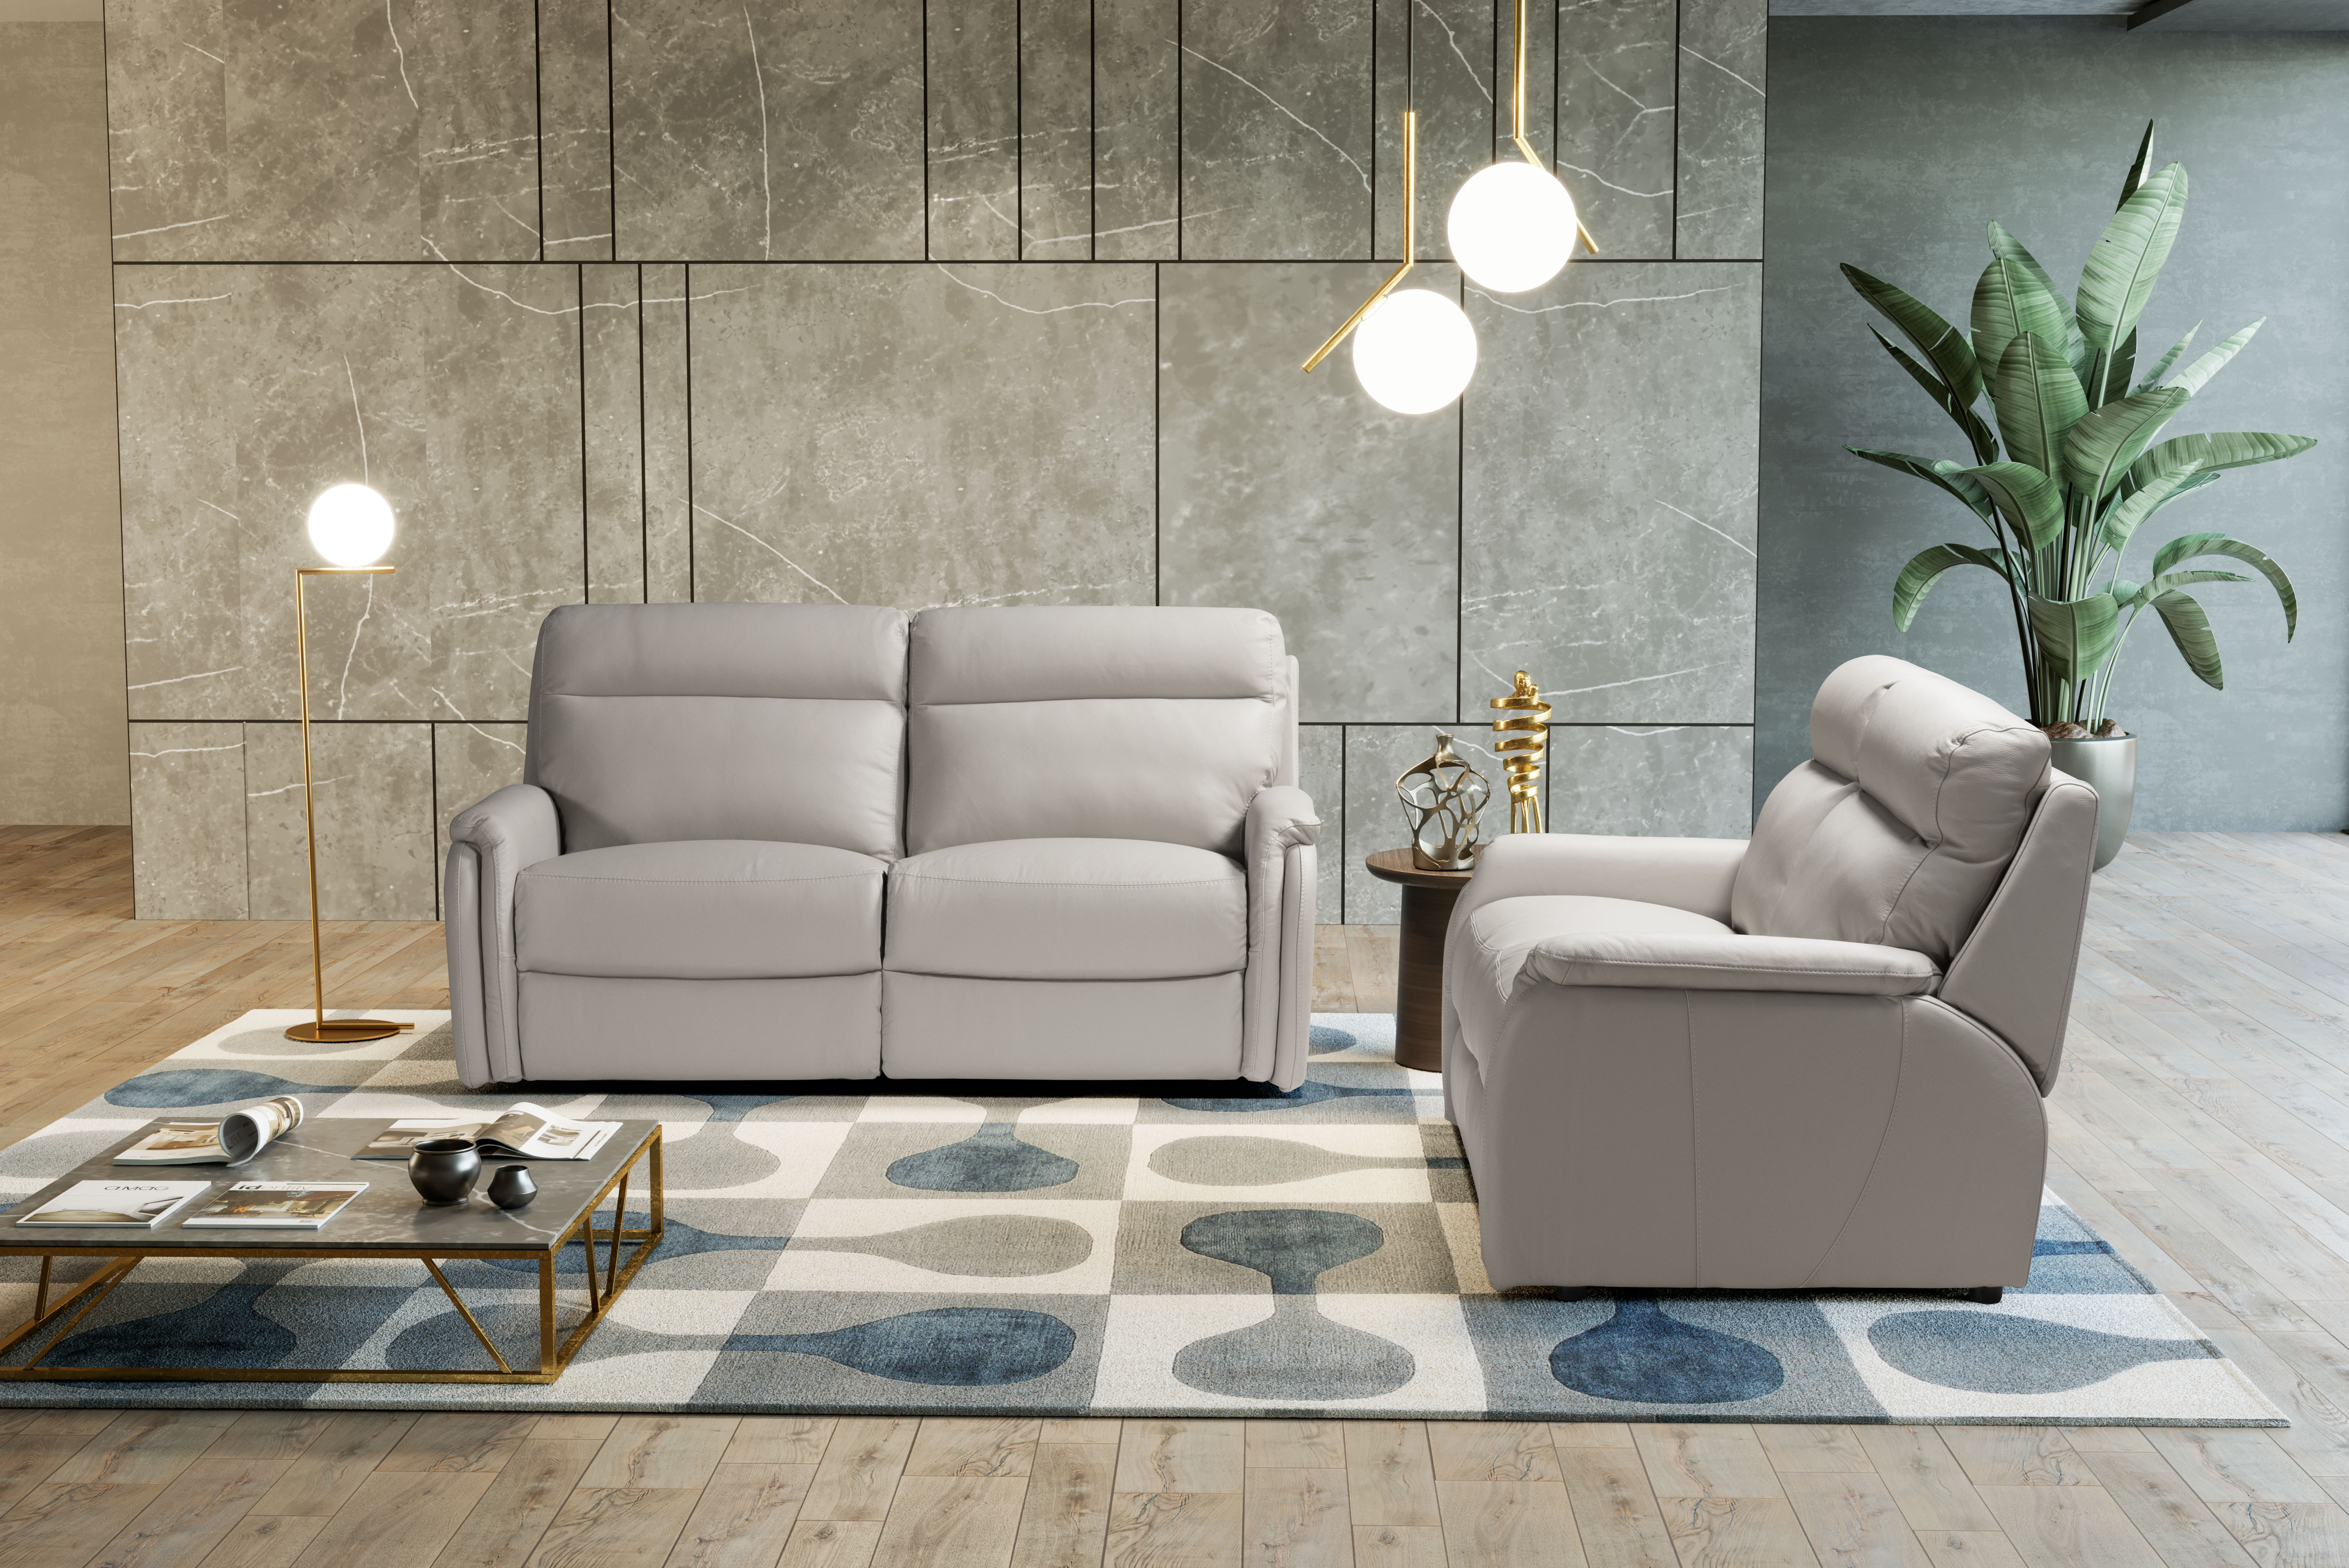 FOX Italian Leather Recliner 3 & 2 Seat Sofa by Galieri - Cenere Light Grey - Image 4 of 4